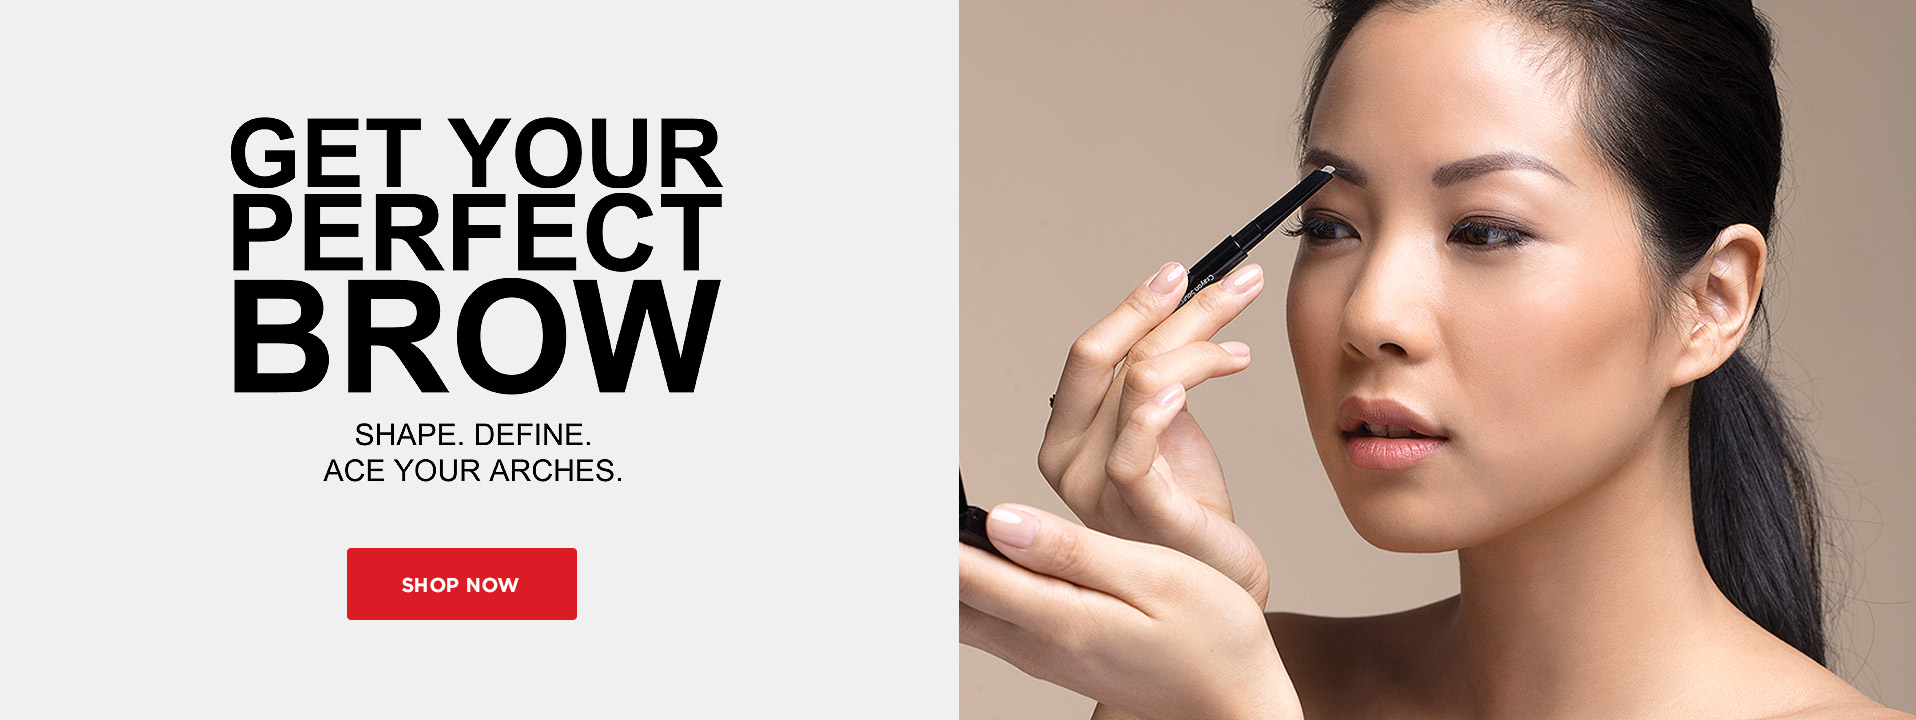 Get Your Perfect Brow: Shape. Define. Ace Your Arches.